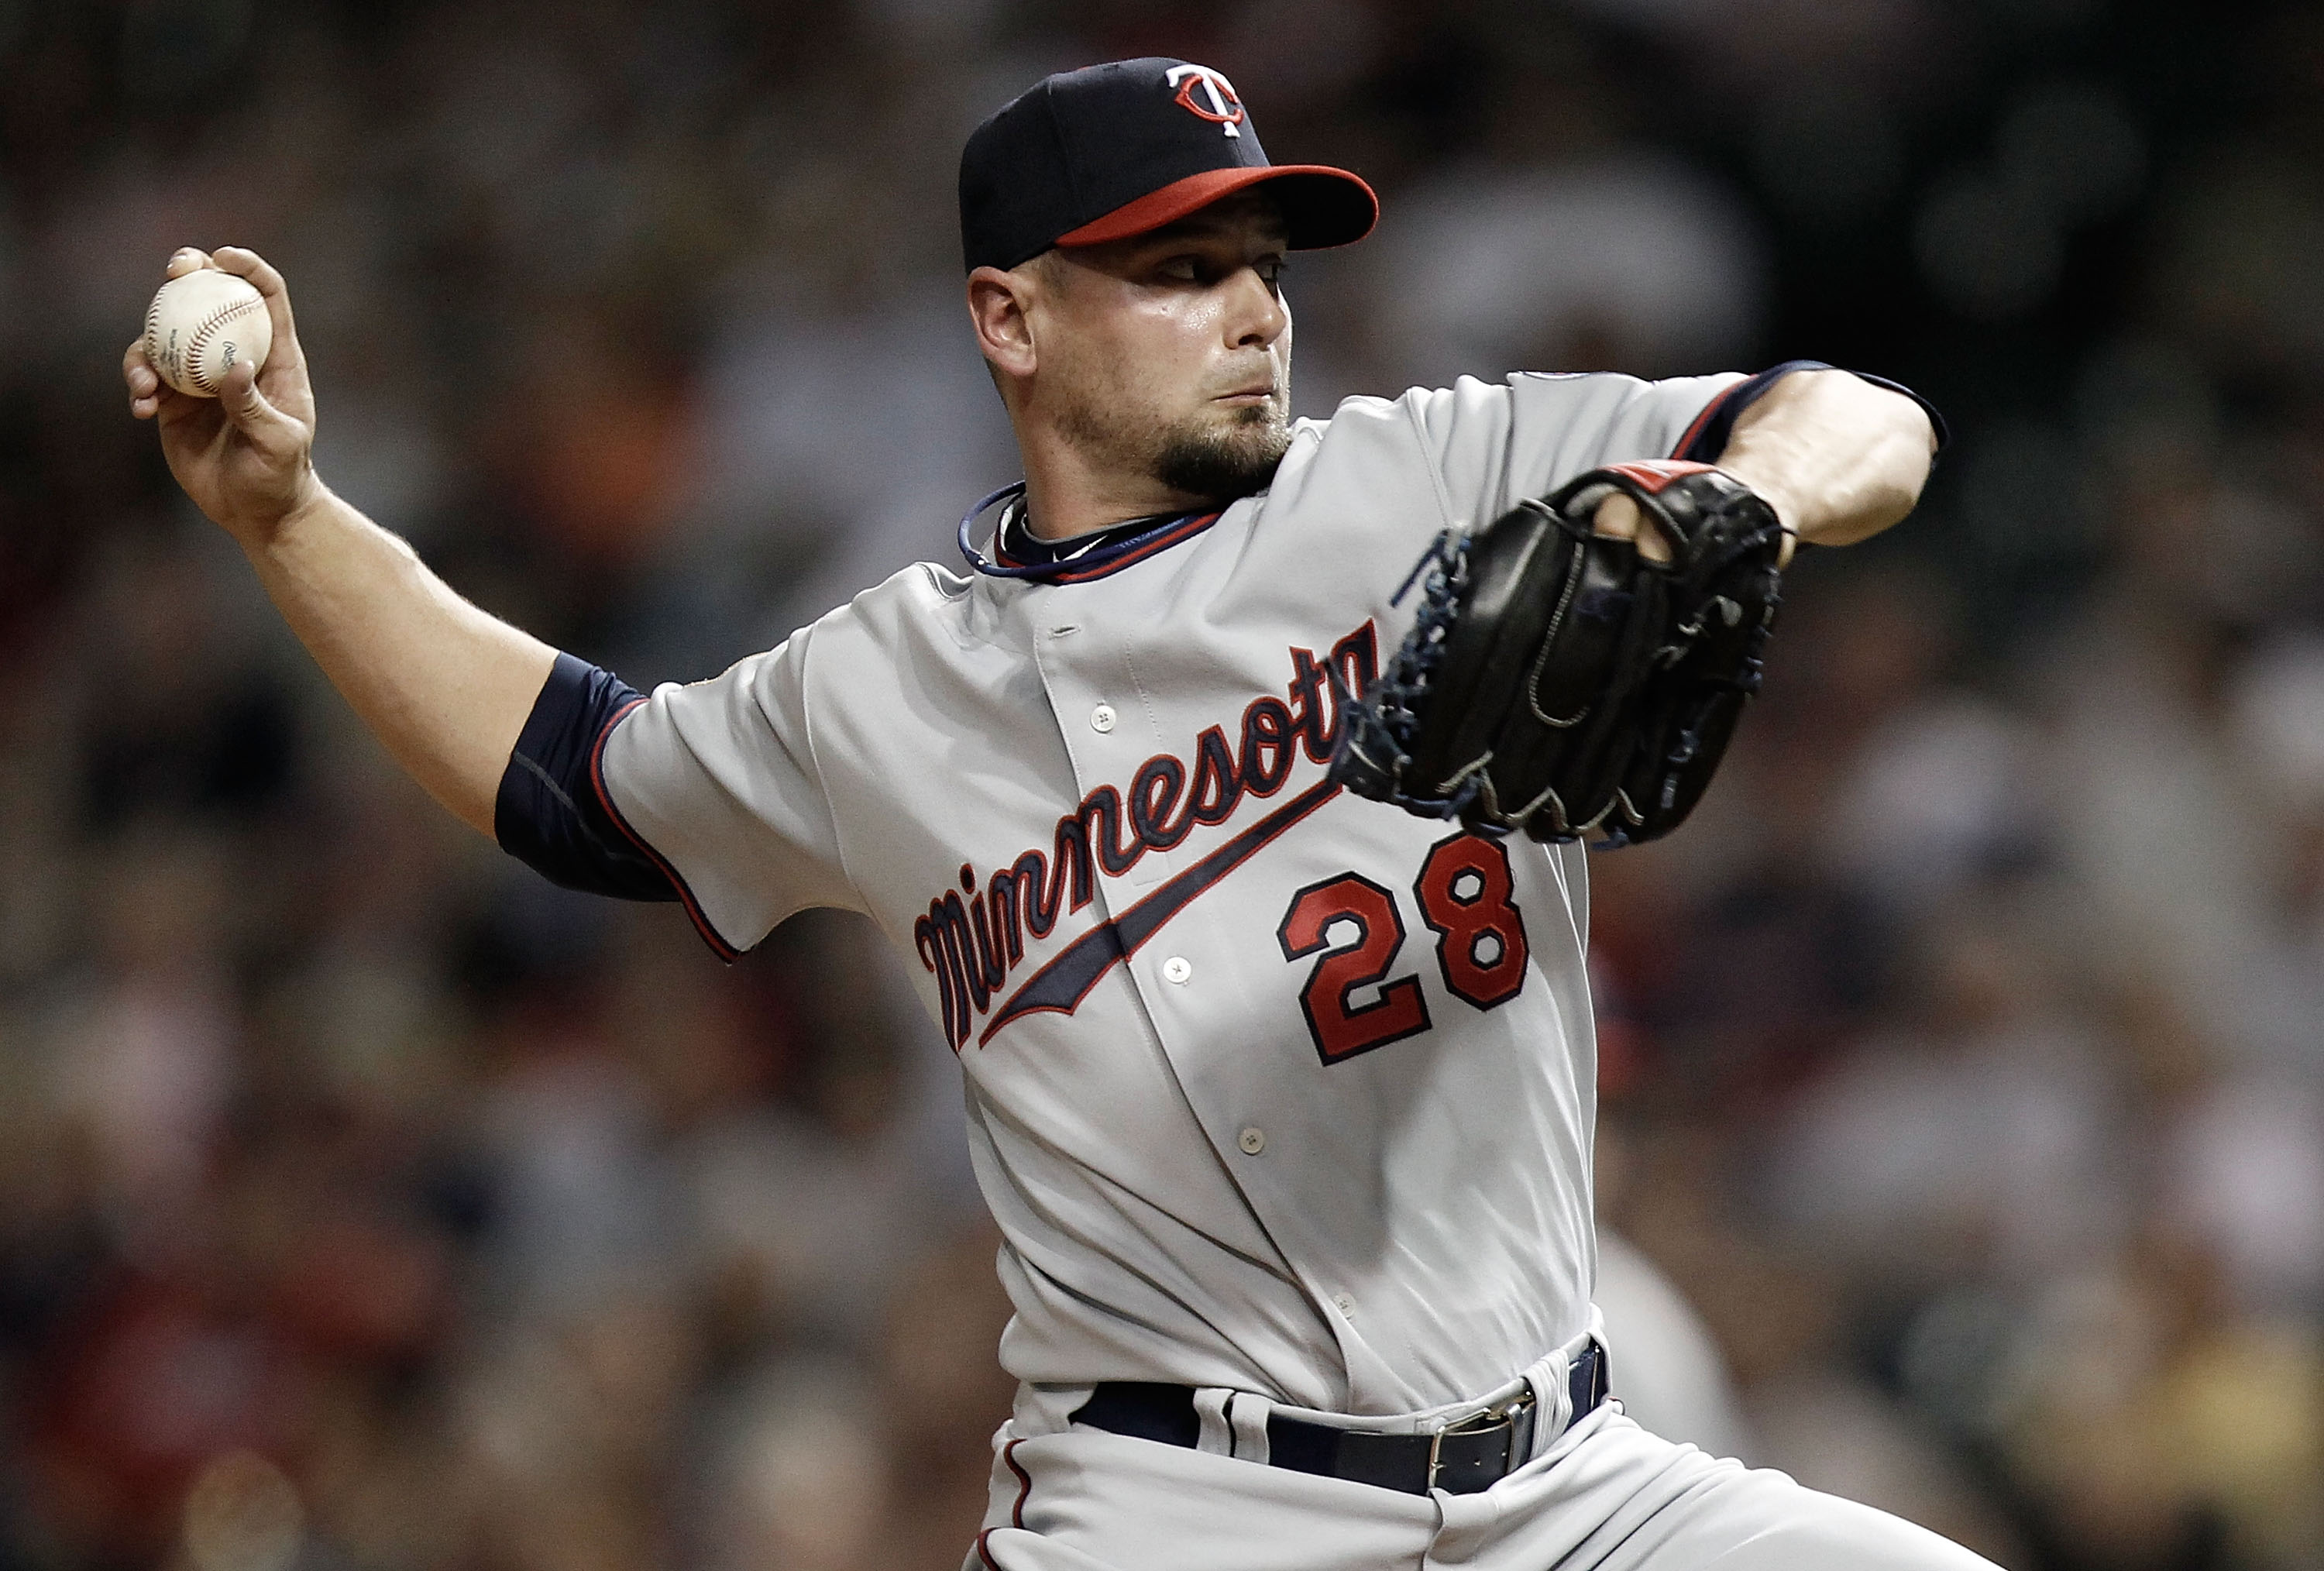 CLEVELAND, OH- APRIL 30: Jesse Crain #28 of the Minnesota Twins pitches against the Cleveland Indians during the game on April 30, 2010 at Progressive Field in Cleveland, Ohio.  (Photo by Jared Wickerham/Getty Images)